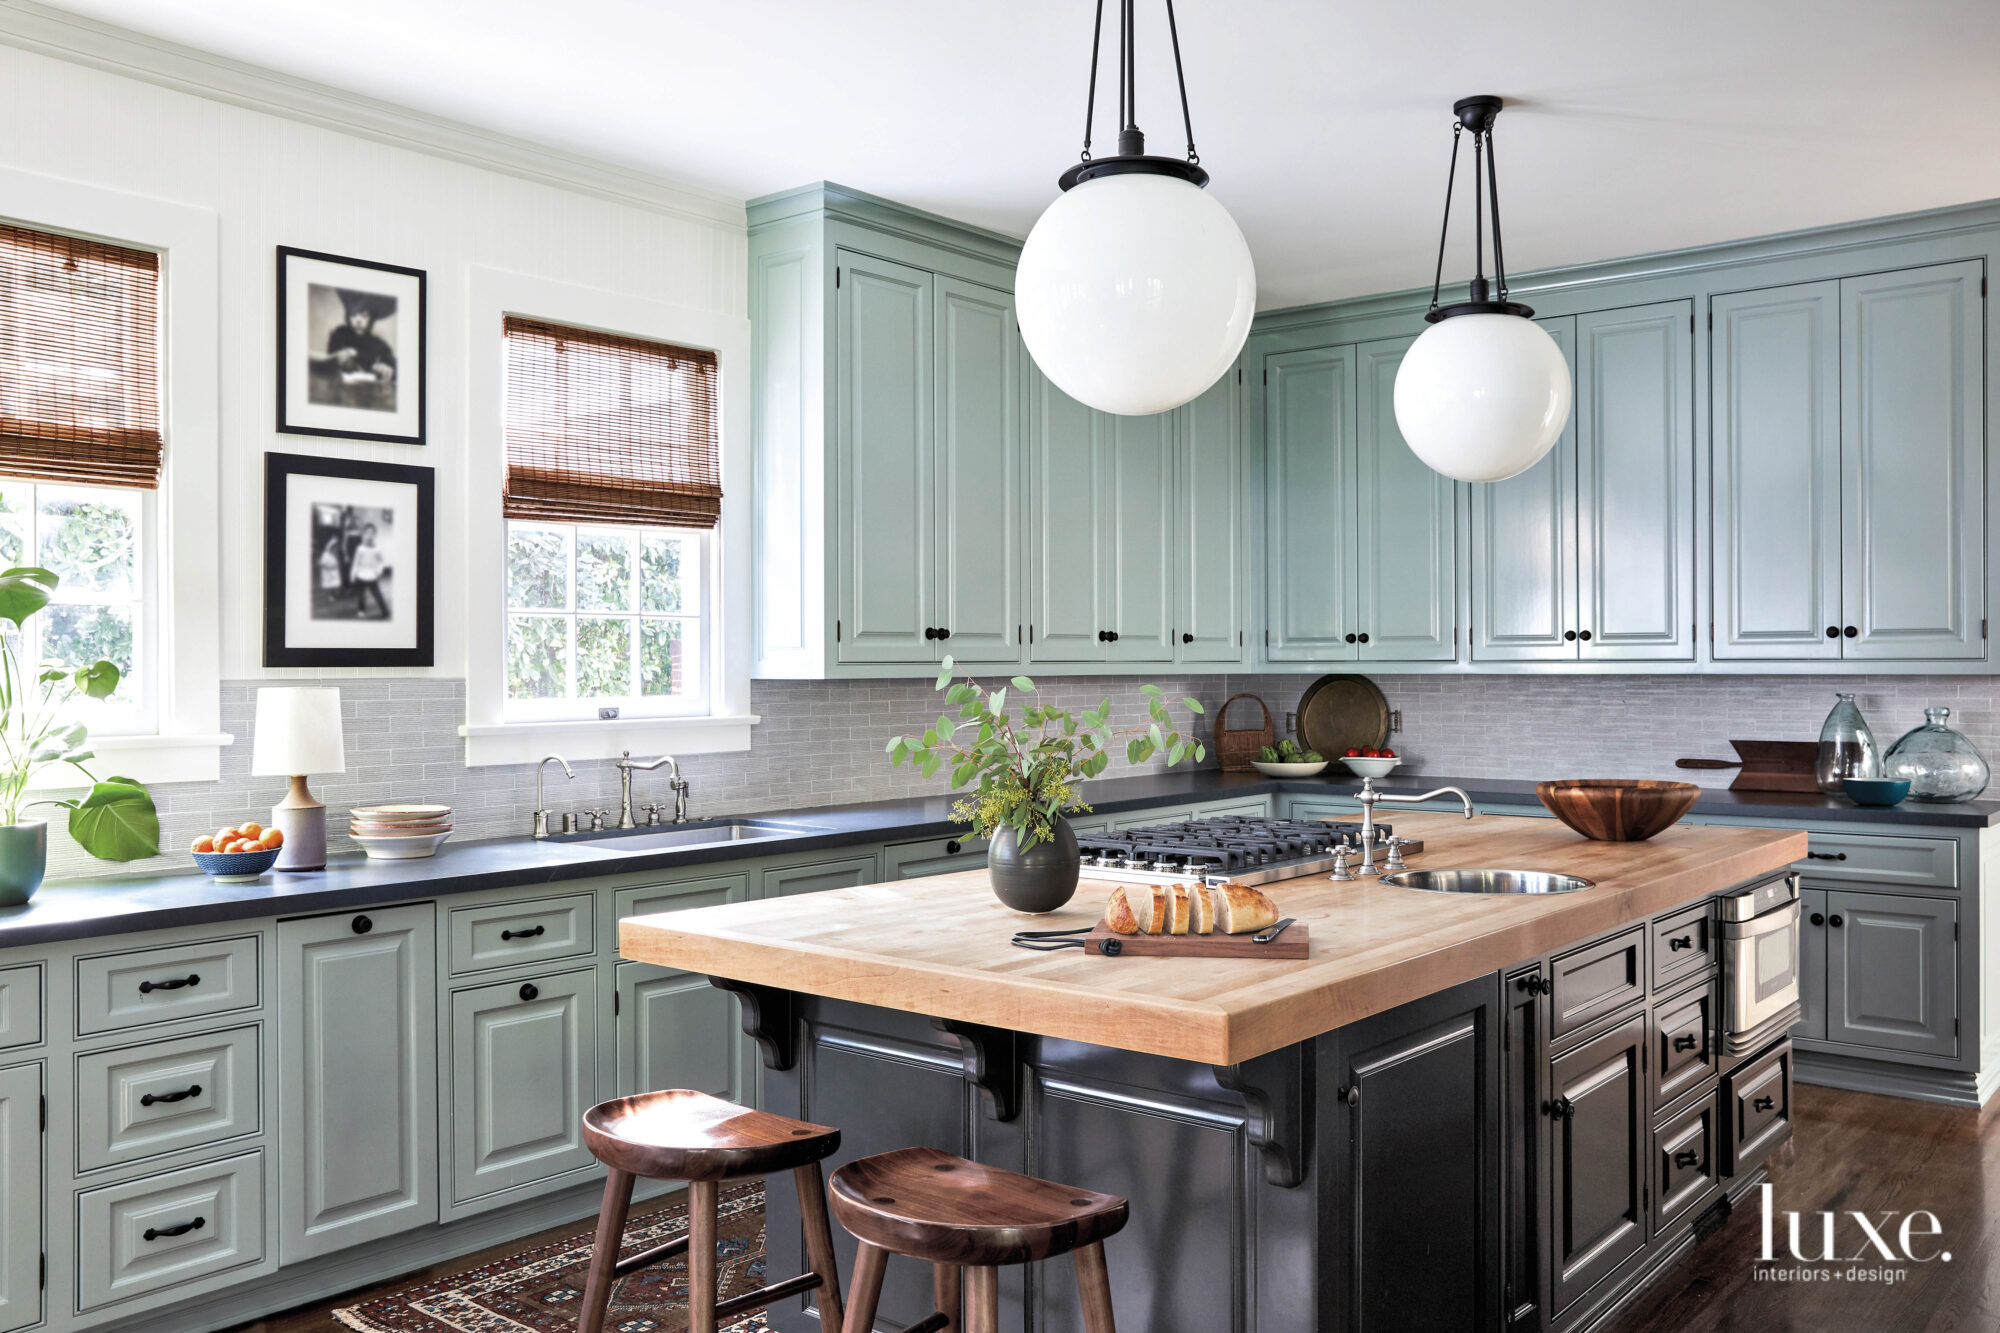 Kitchen with pale green painted cabinets and a wood counter island with black cabinets.